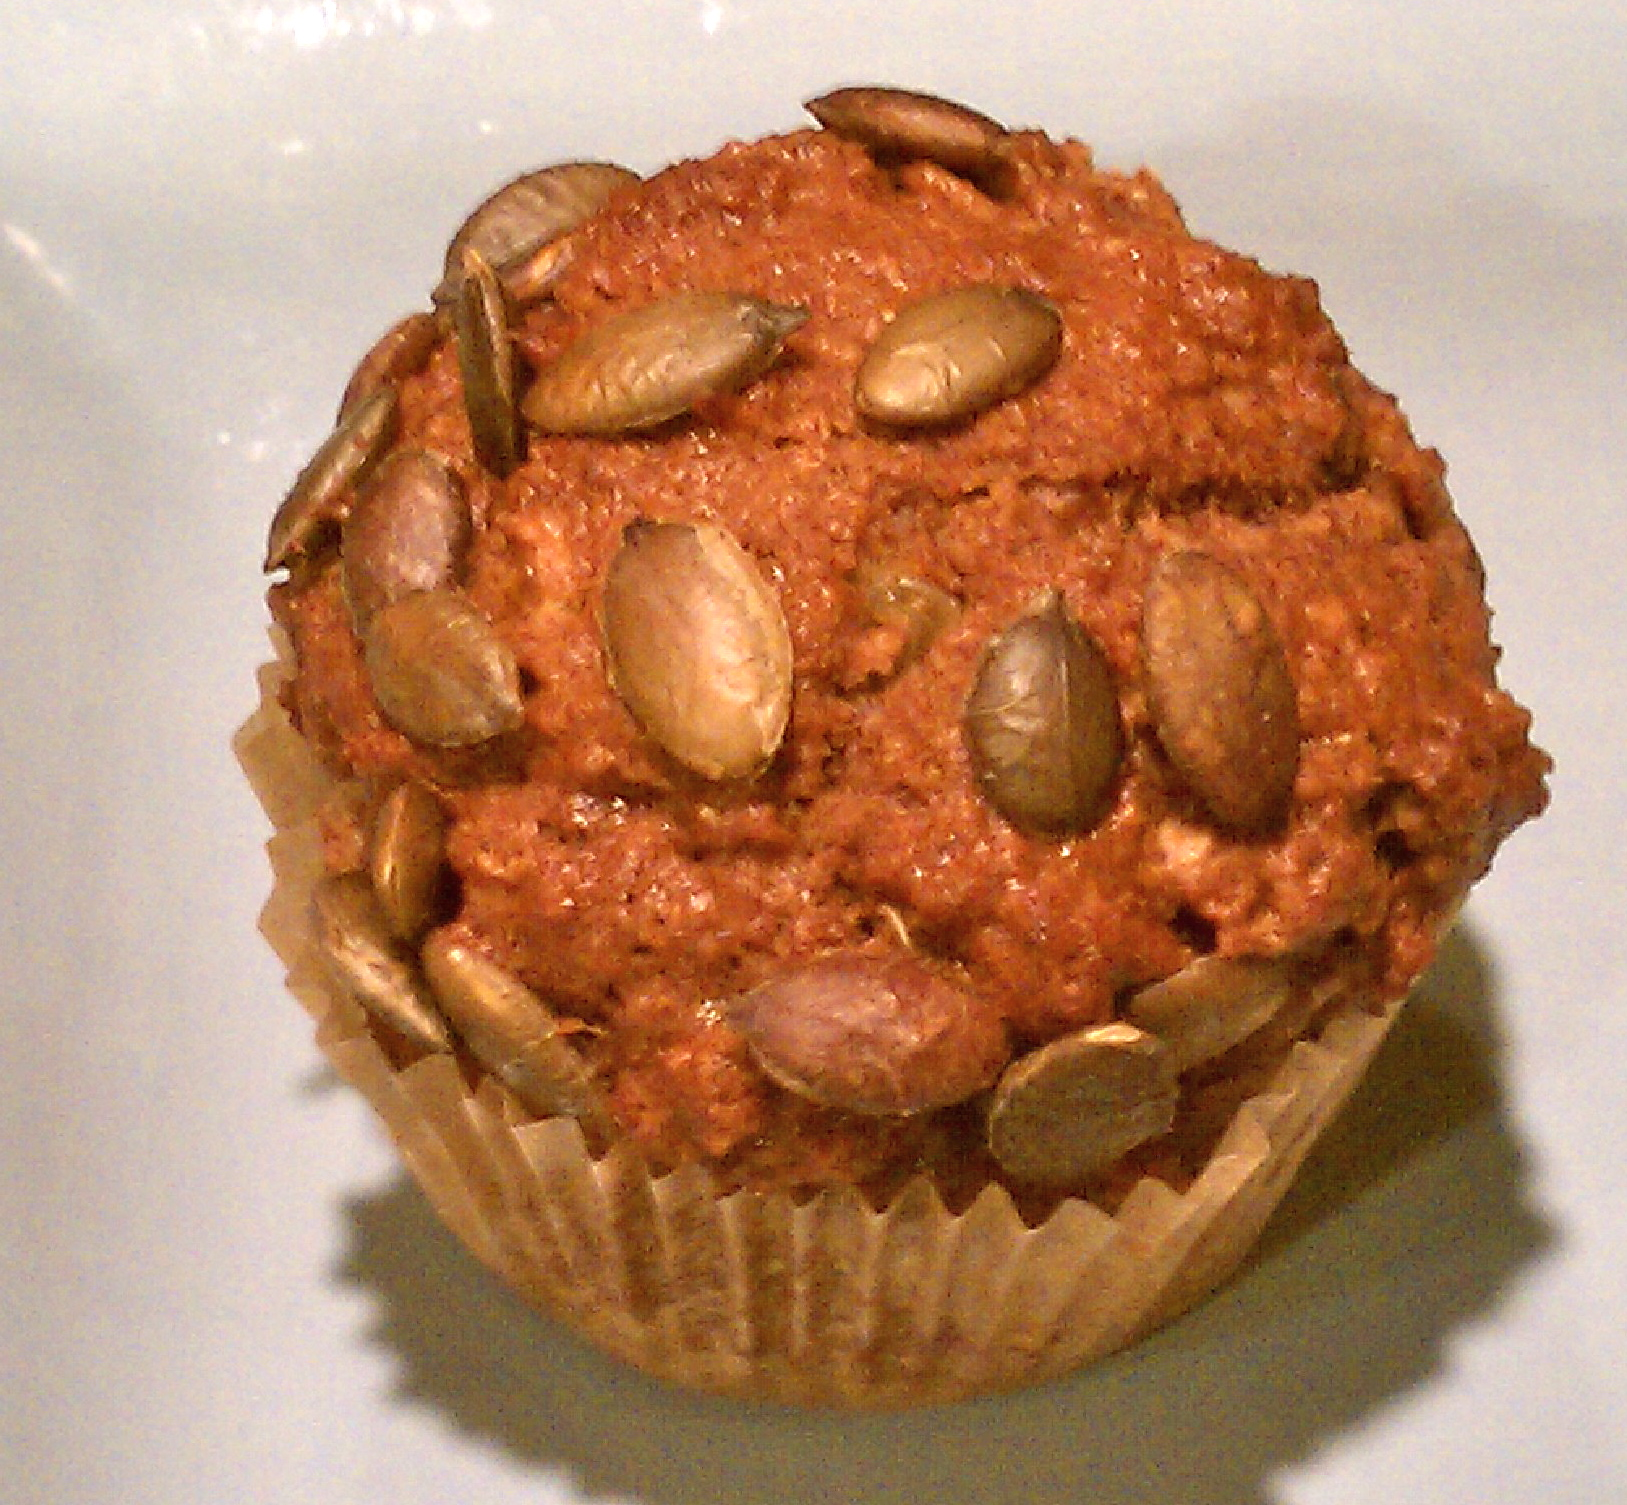 bran muffins elly in canada honey oat bran with golden oat bran plump ...